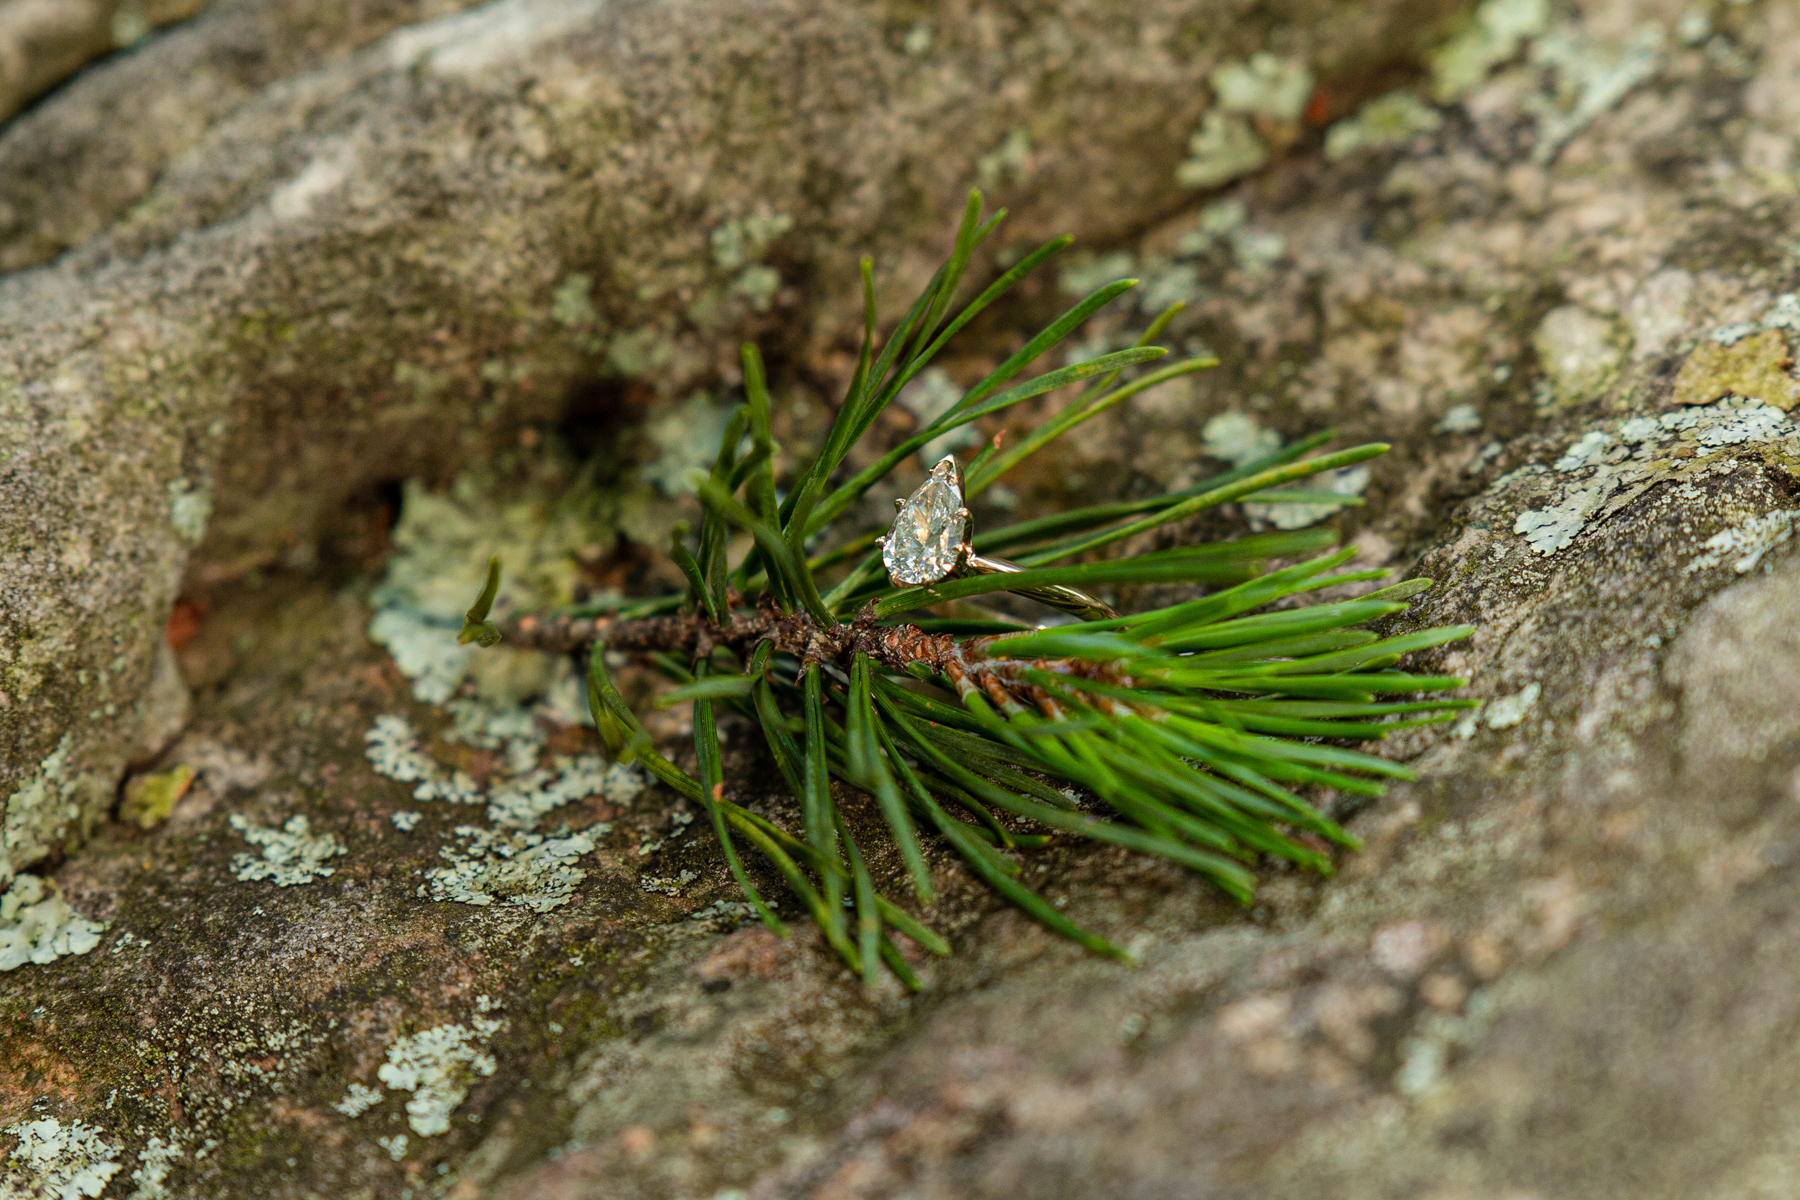 Engagement Ring in Woodland Setting.jpg